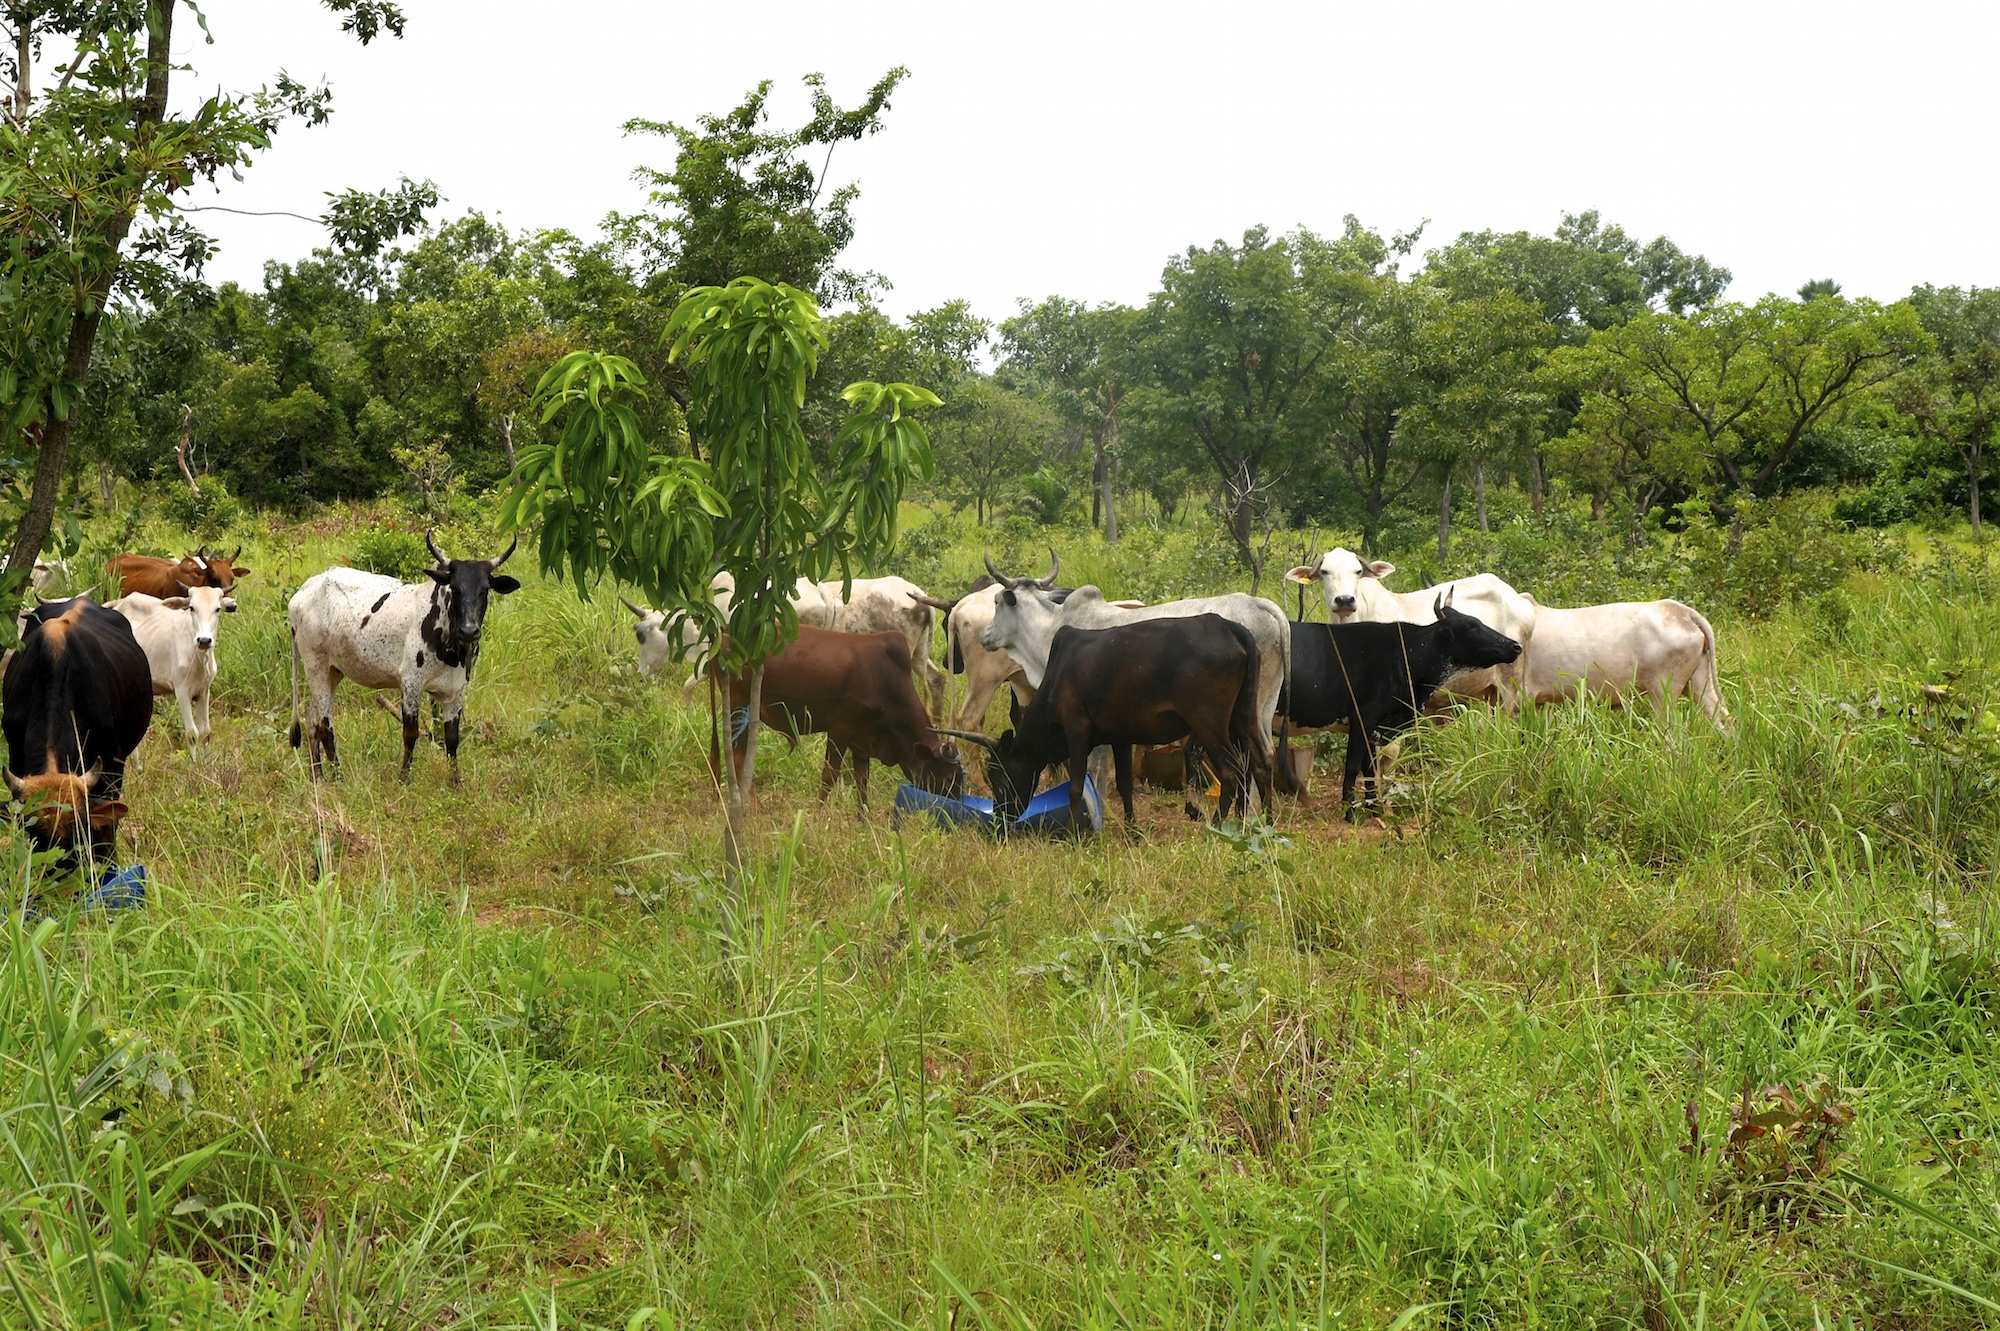 Cattle grazing beneath trees a few years after reforestation